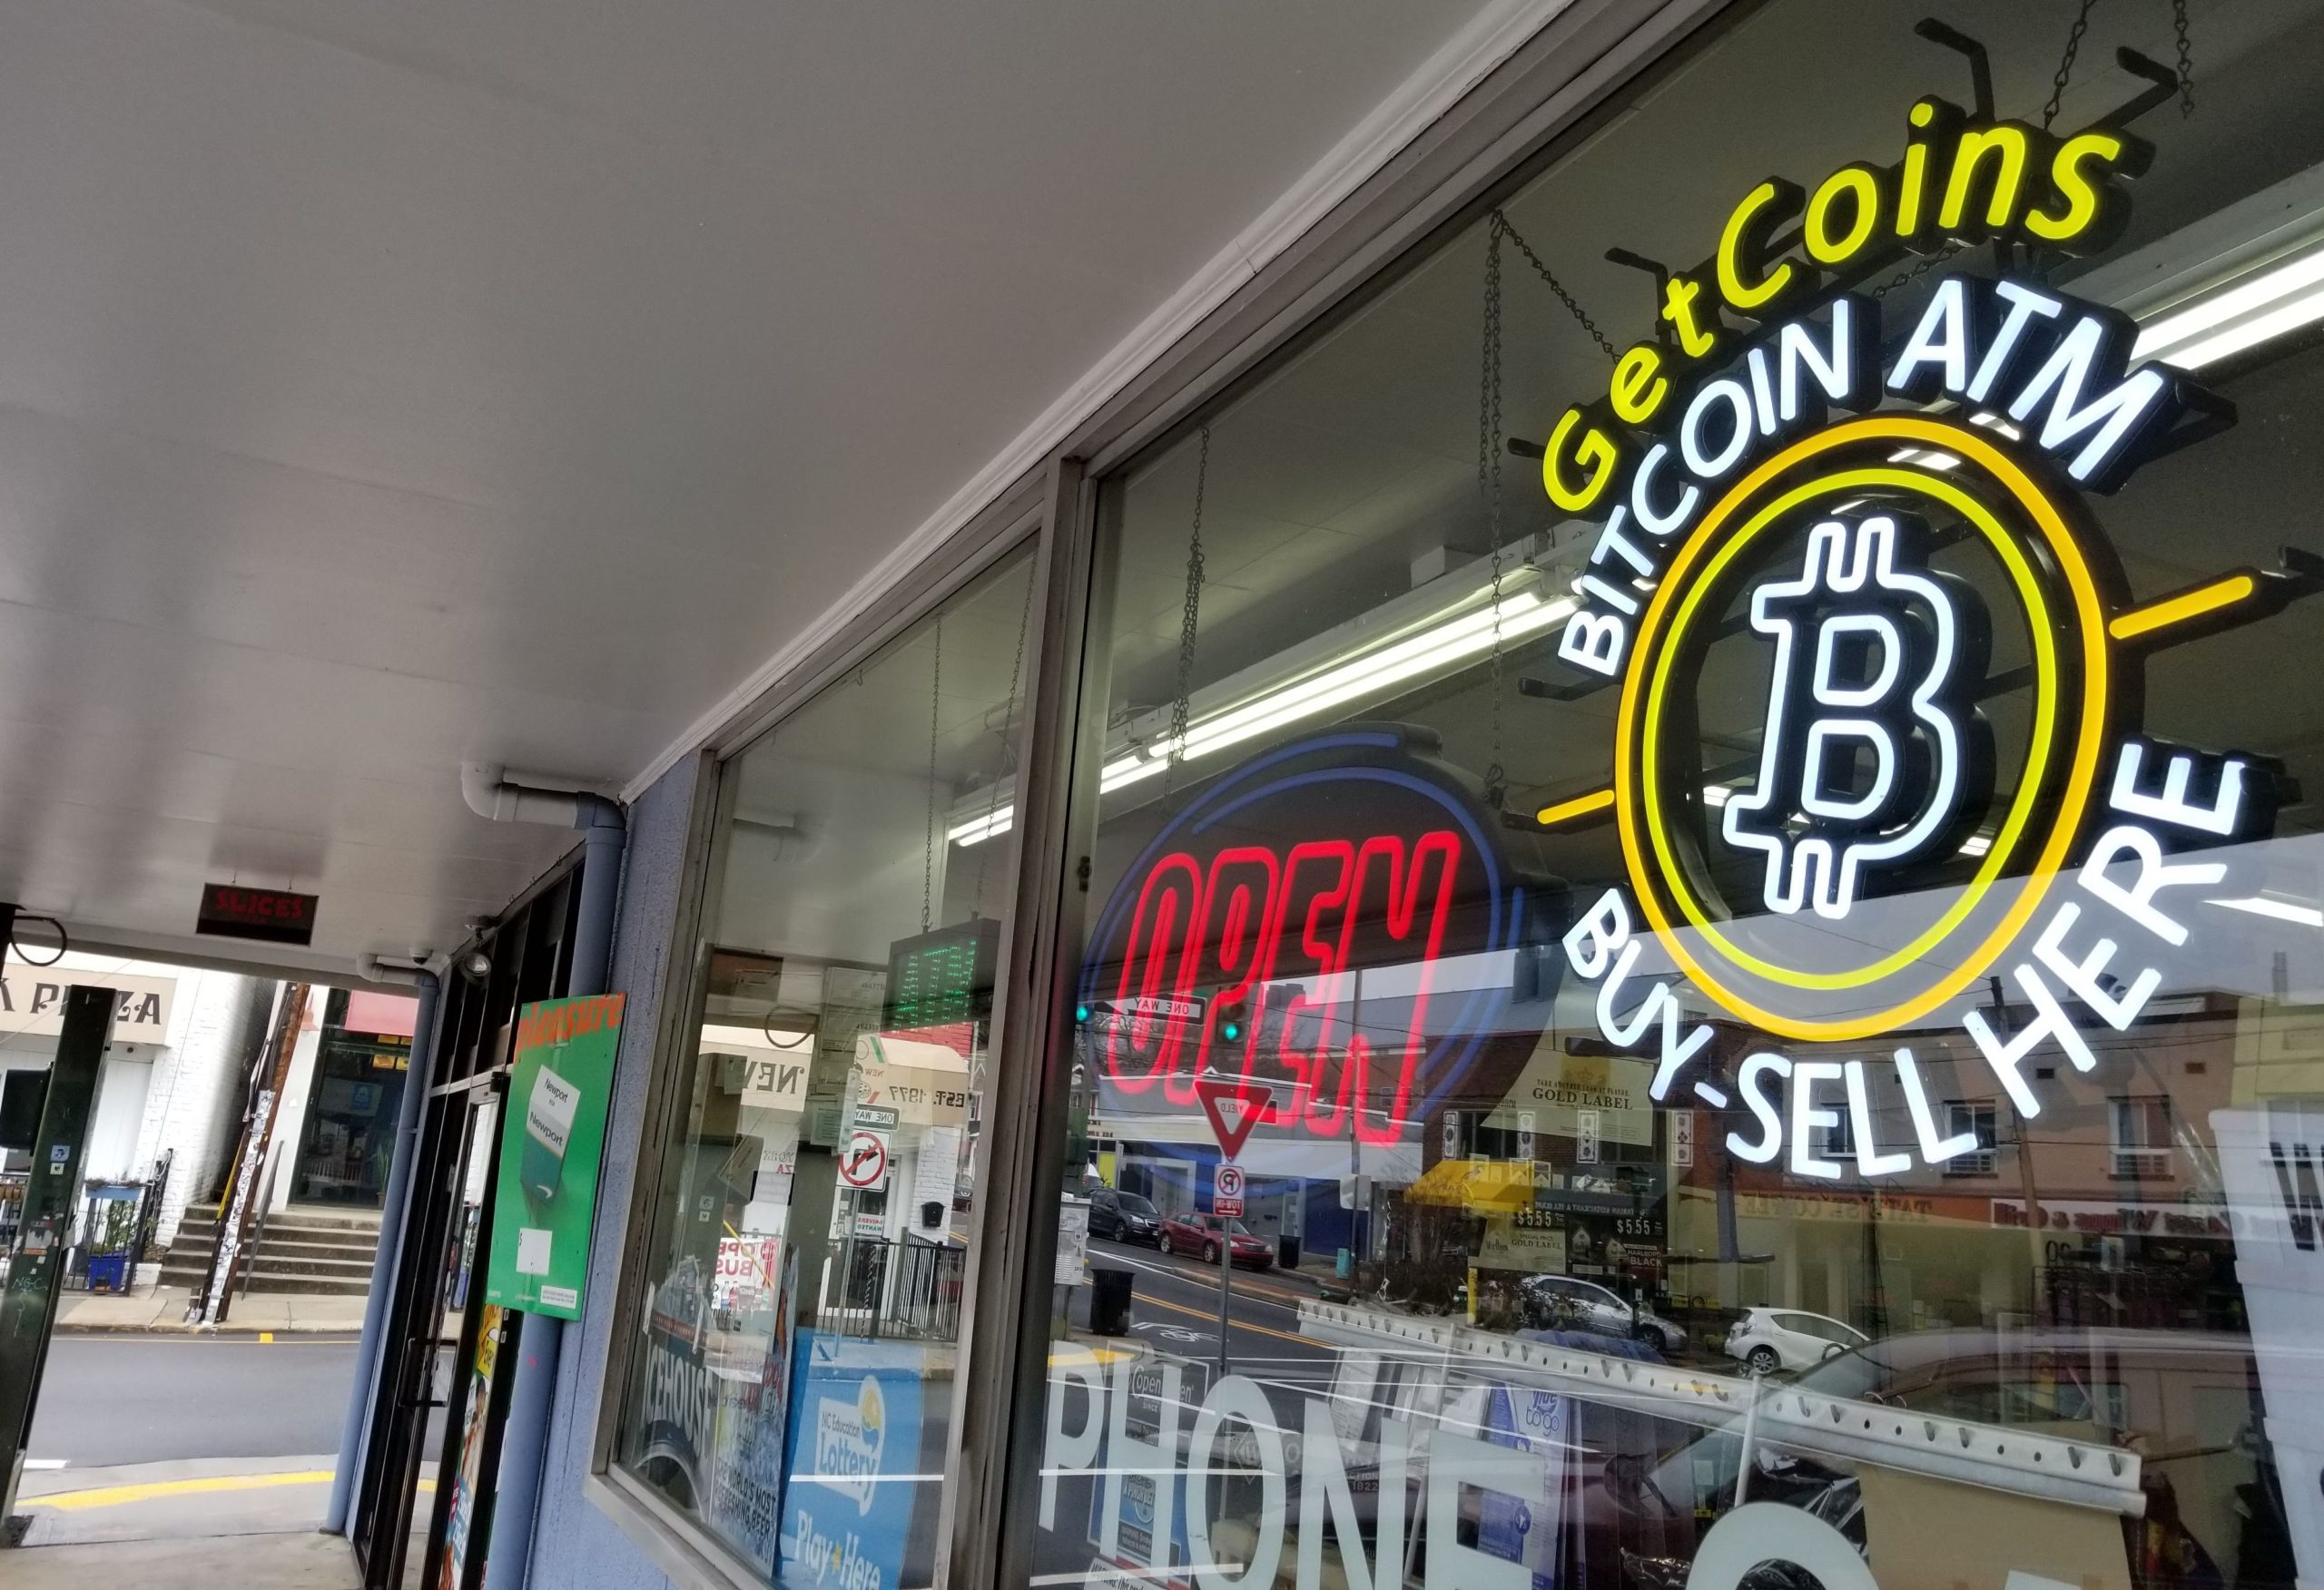 window of the College Mart woth neon Bitcon ATM sign